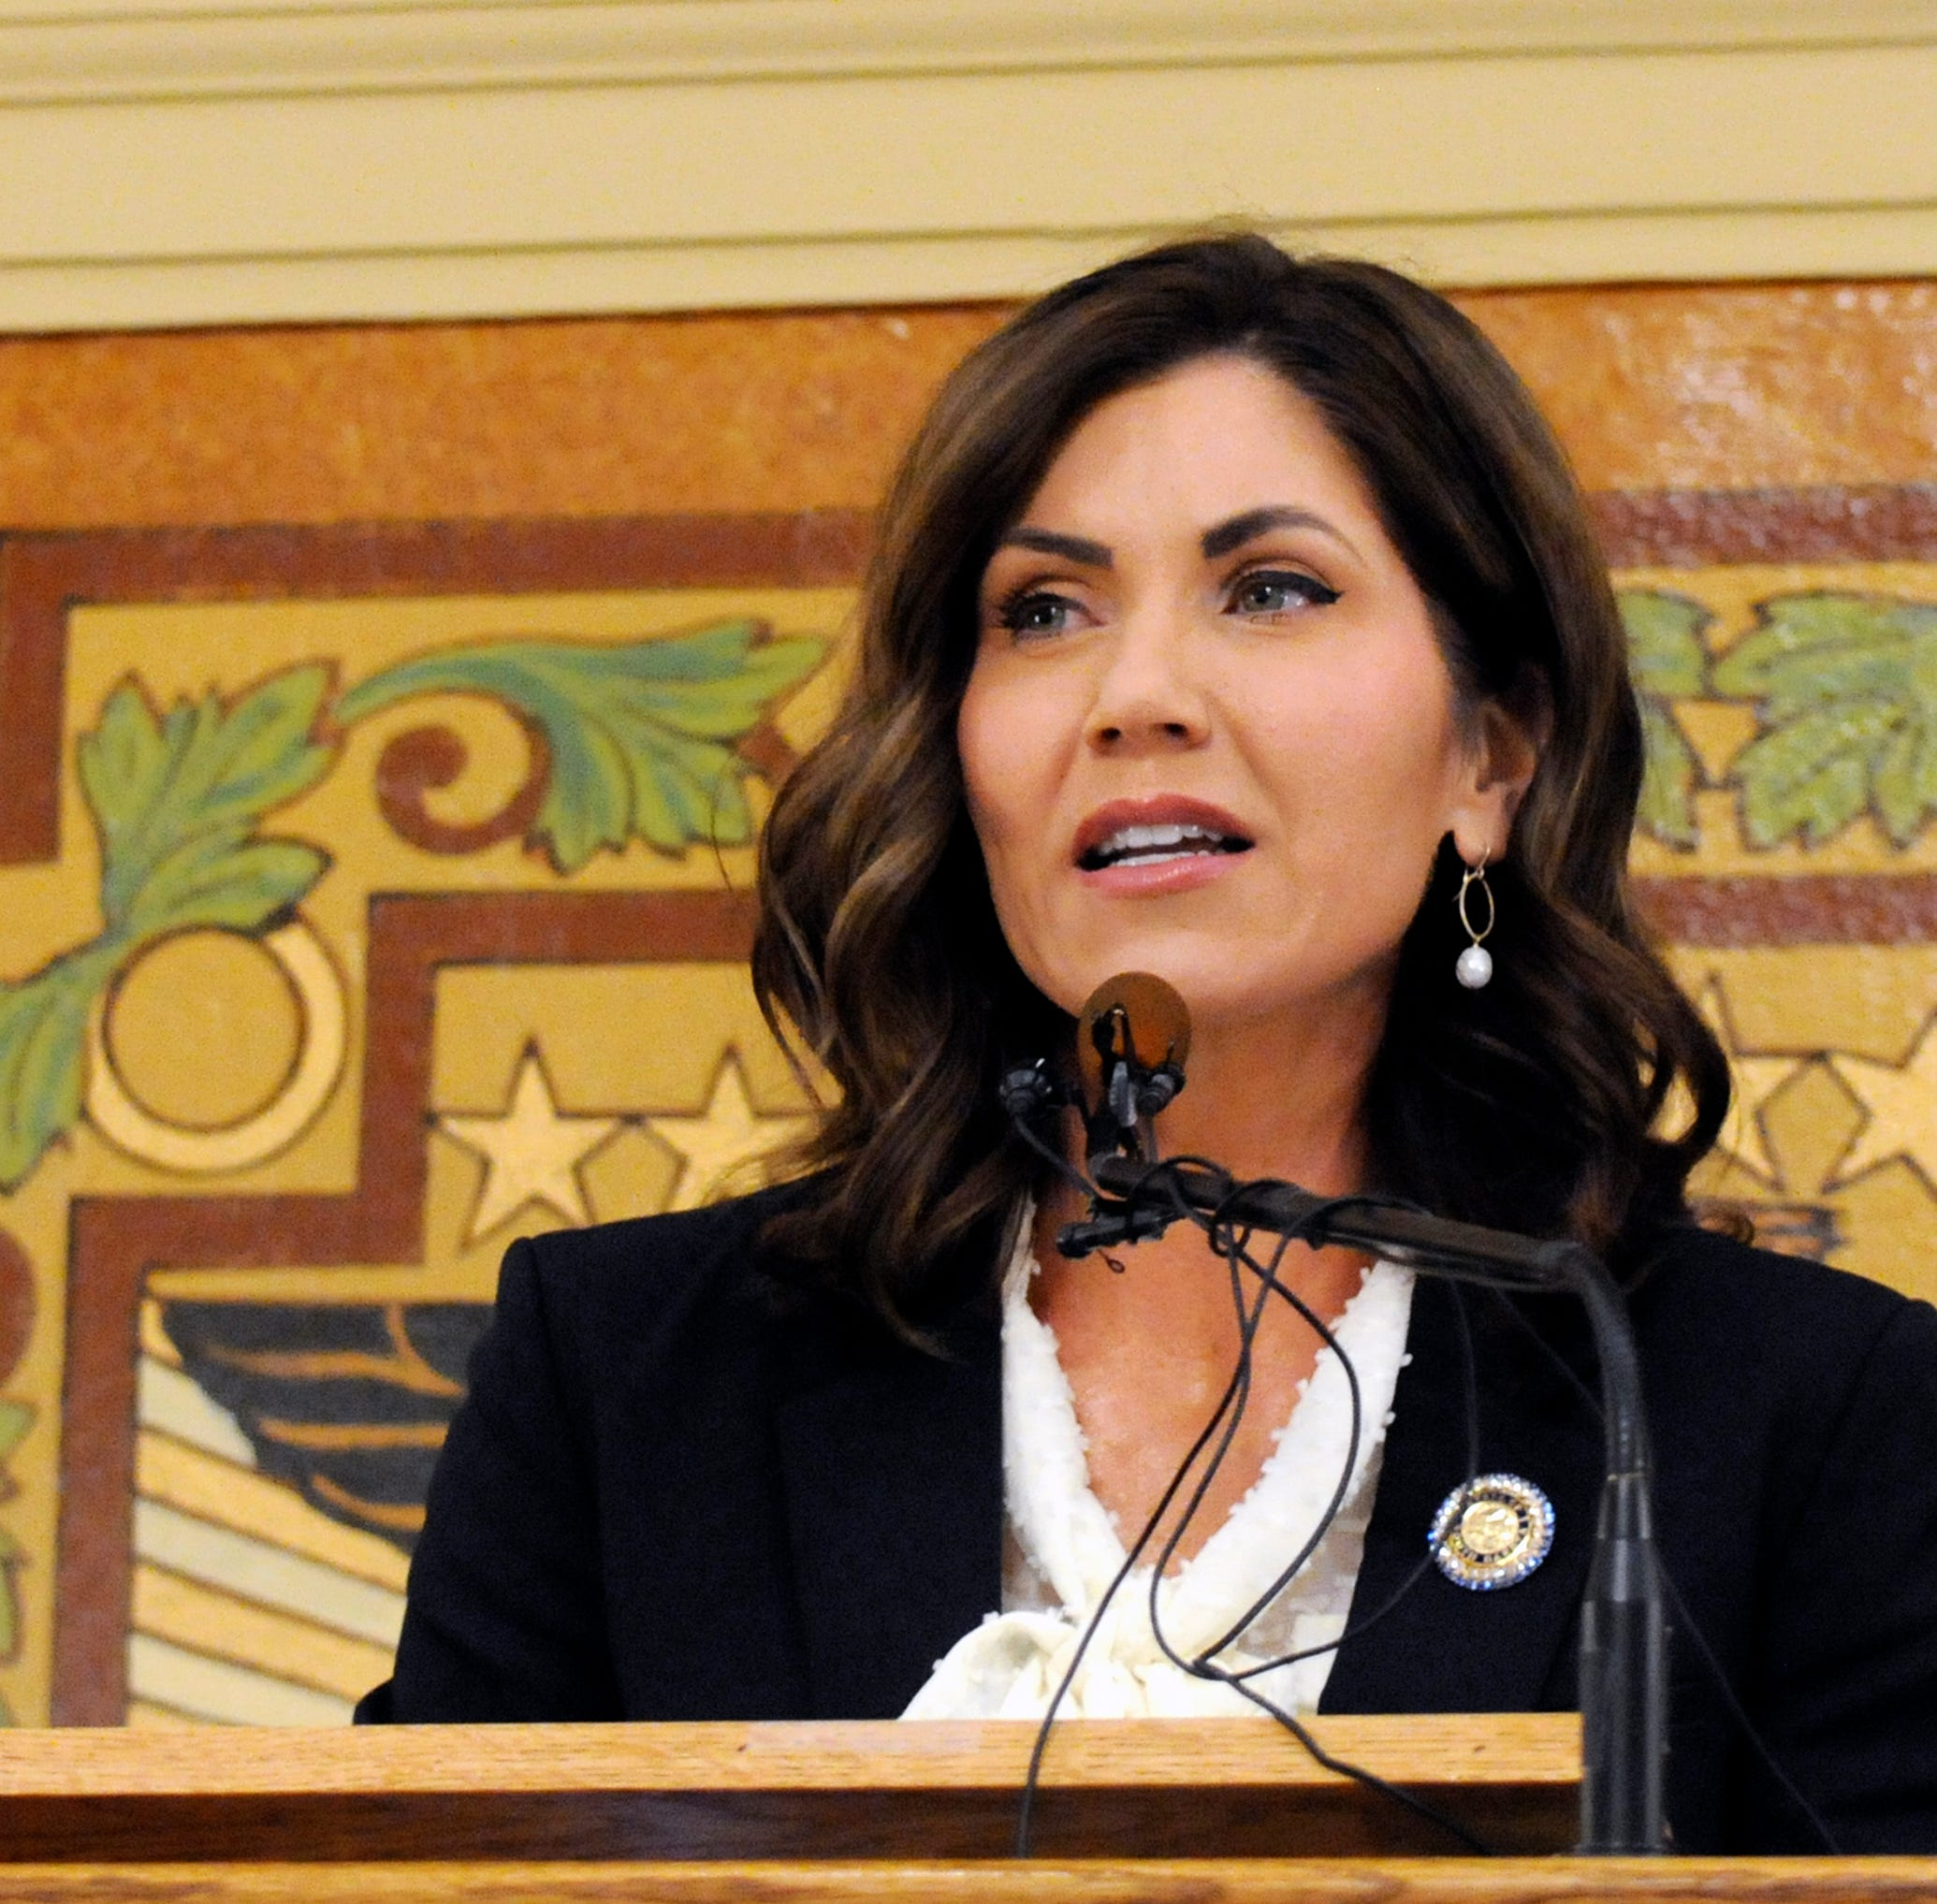 Noem, GOP target university 'political correctness' with first-of-its-kind diversity, speech law